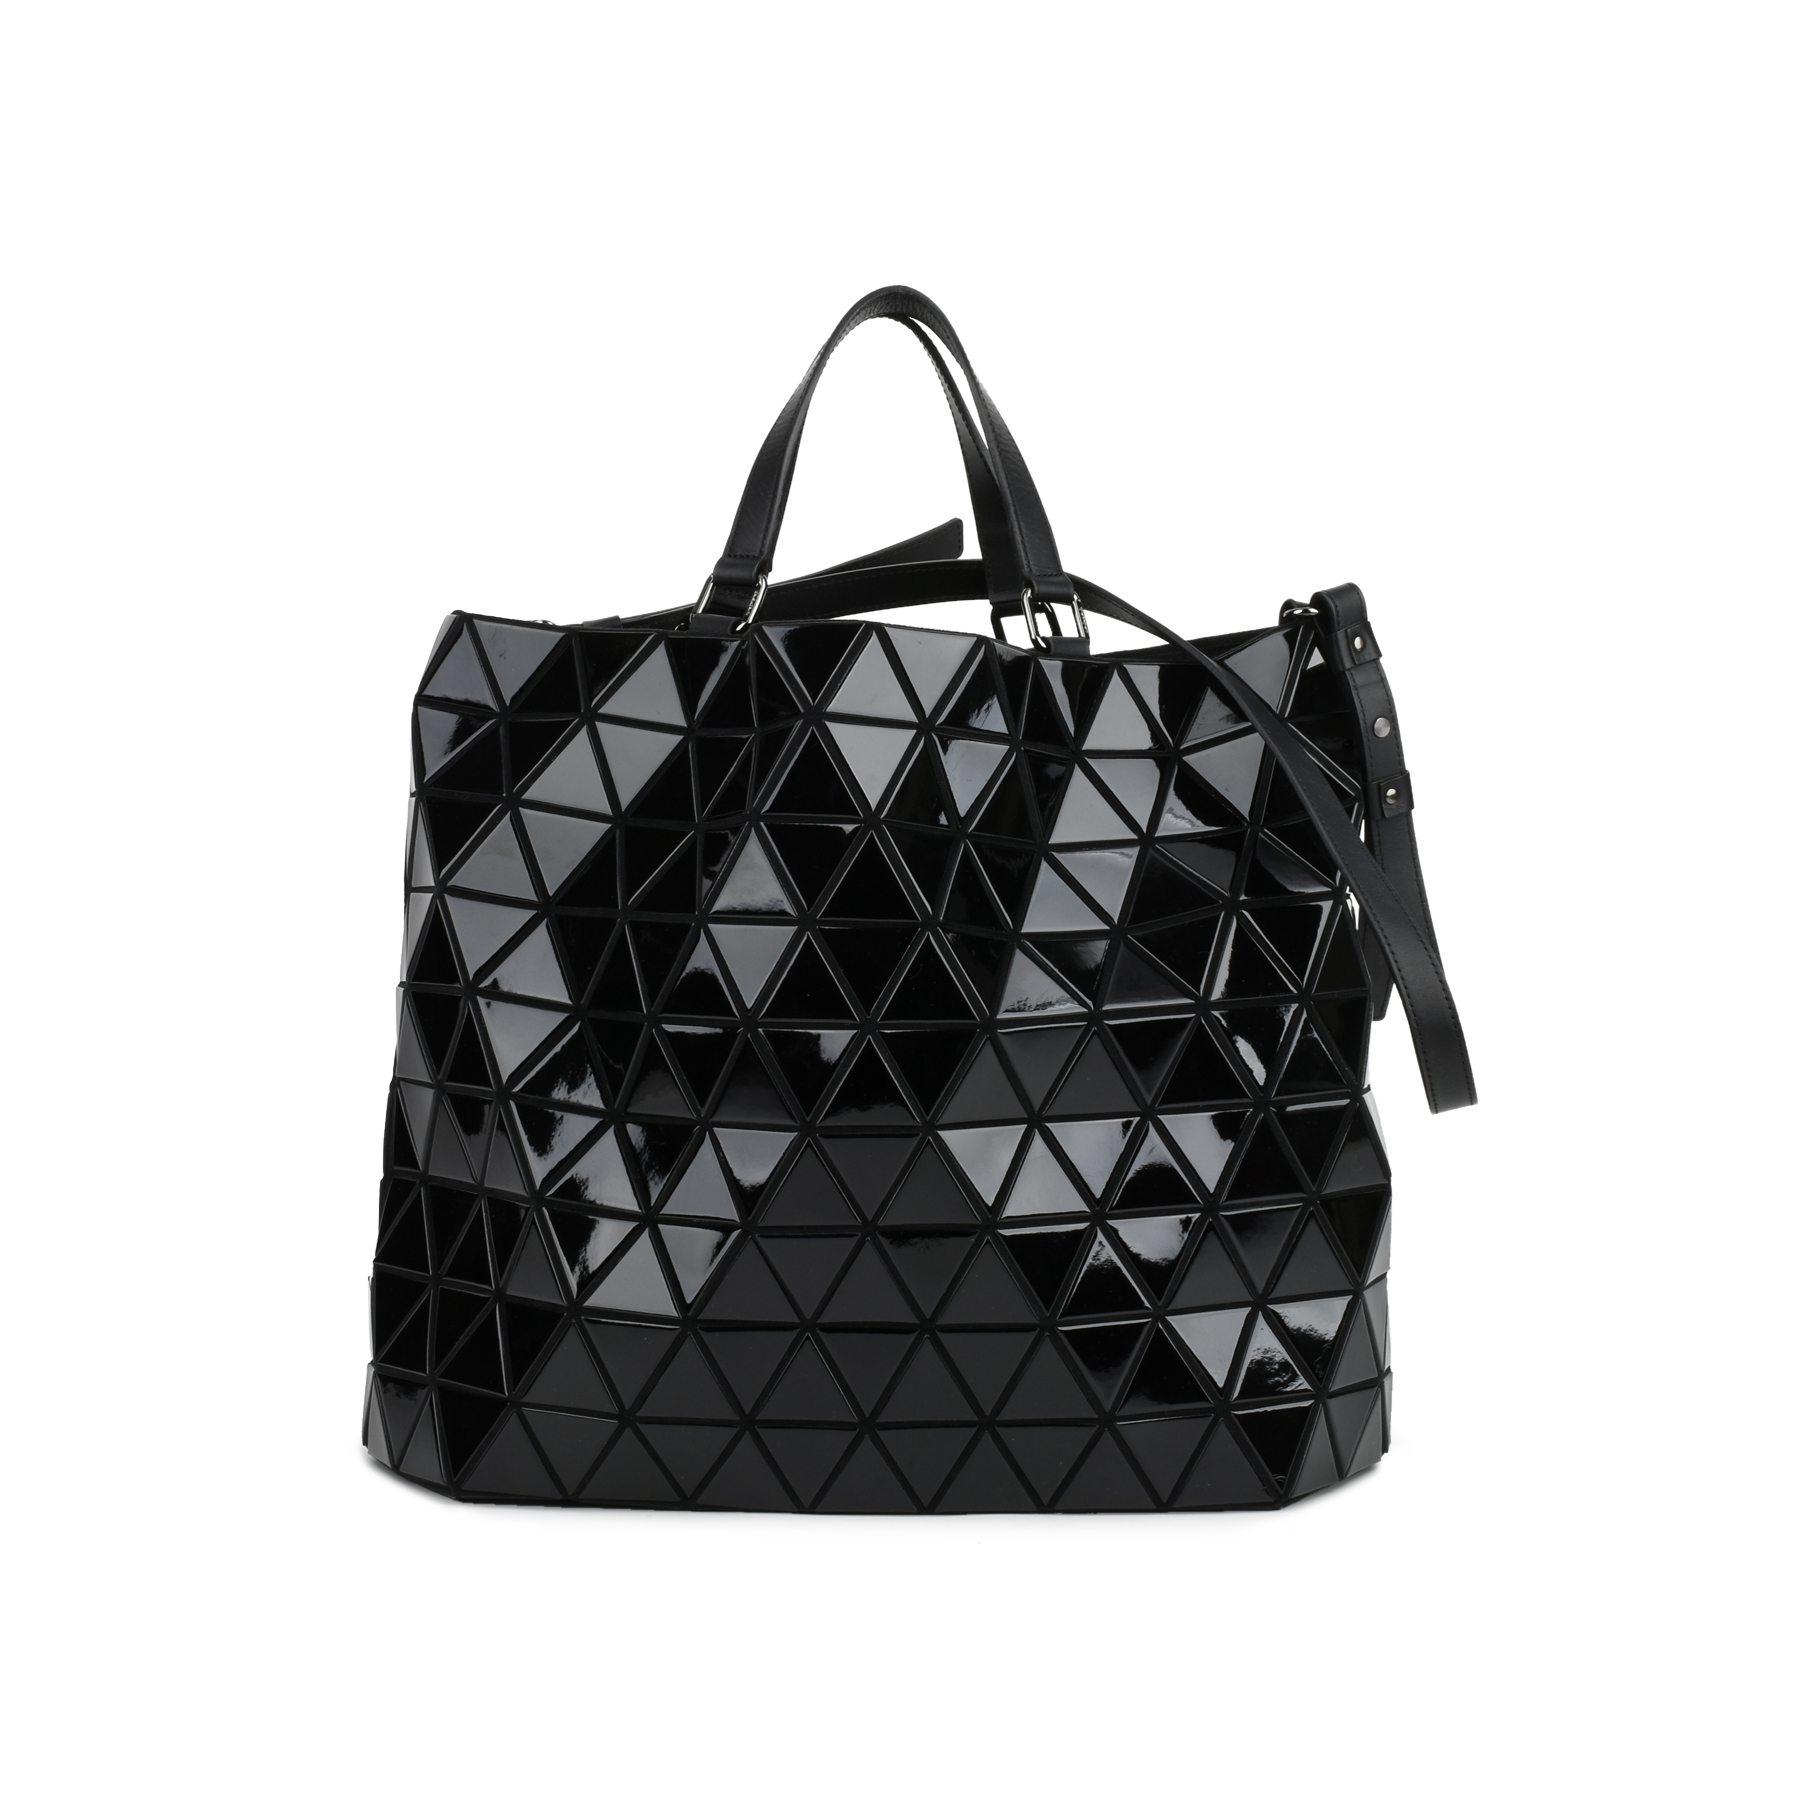 Authentic Second Hand Issey Miyake Crystal Gloss Shoulder Bag  (PSS-444-00002)  9258b7ee6960f